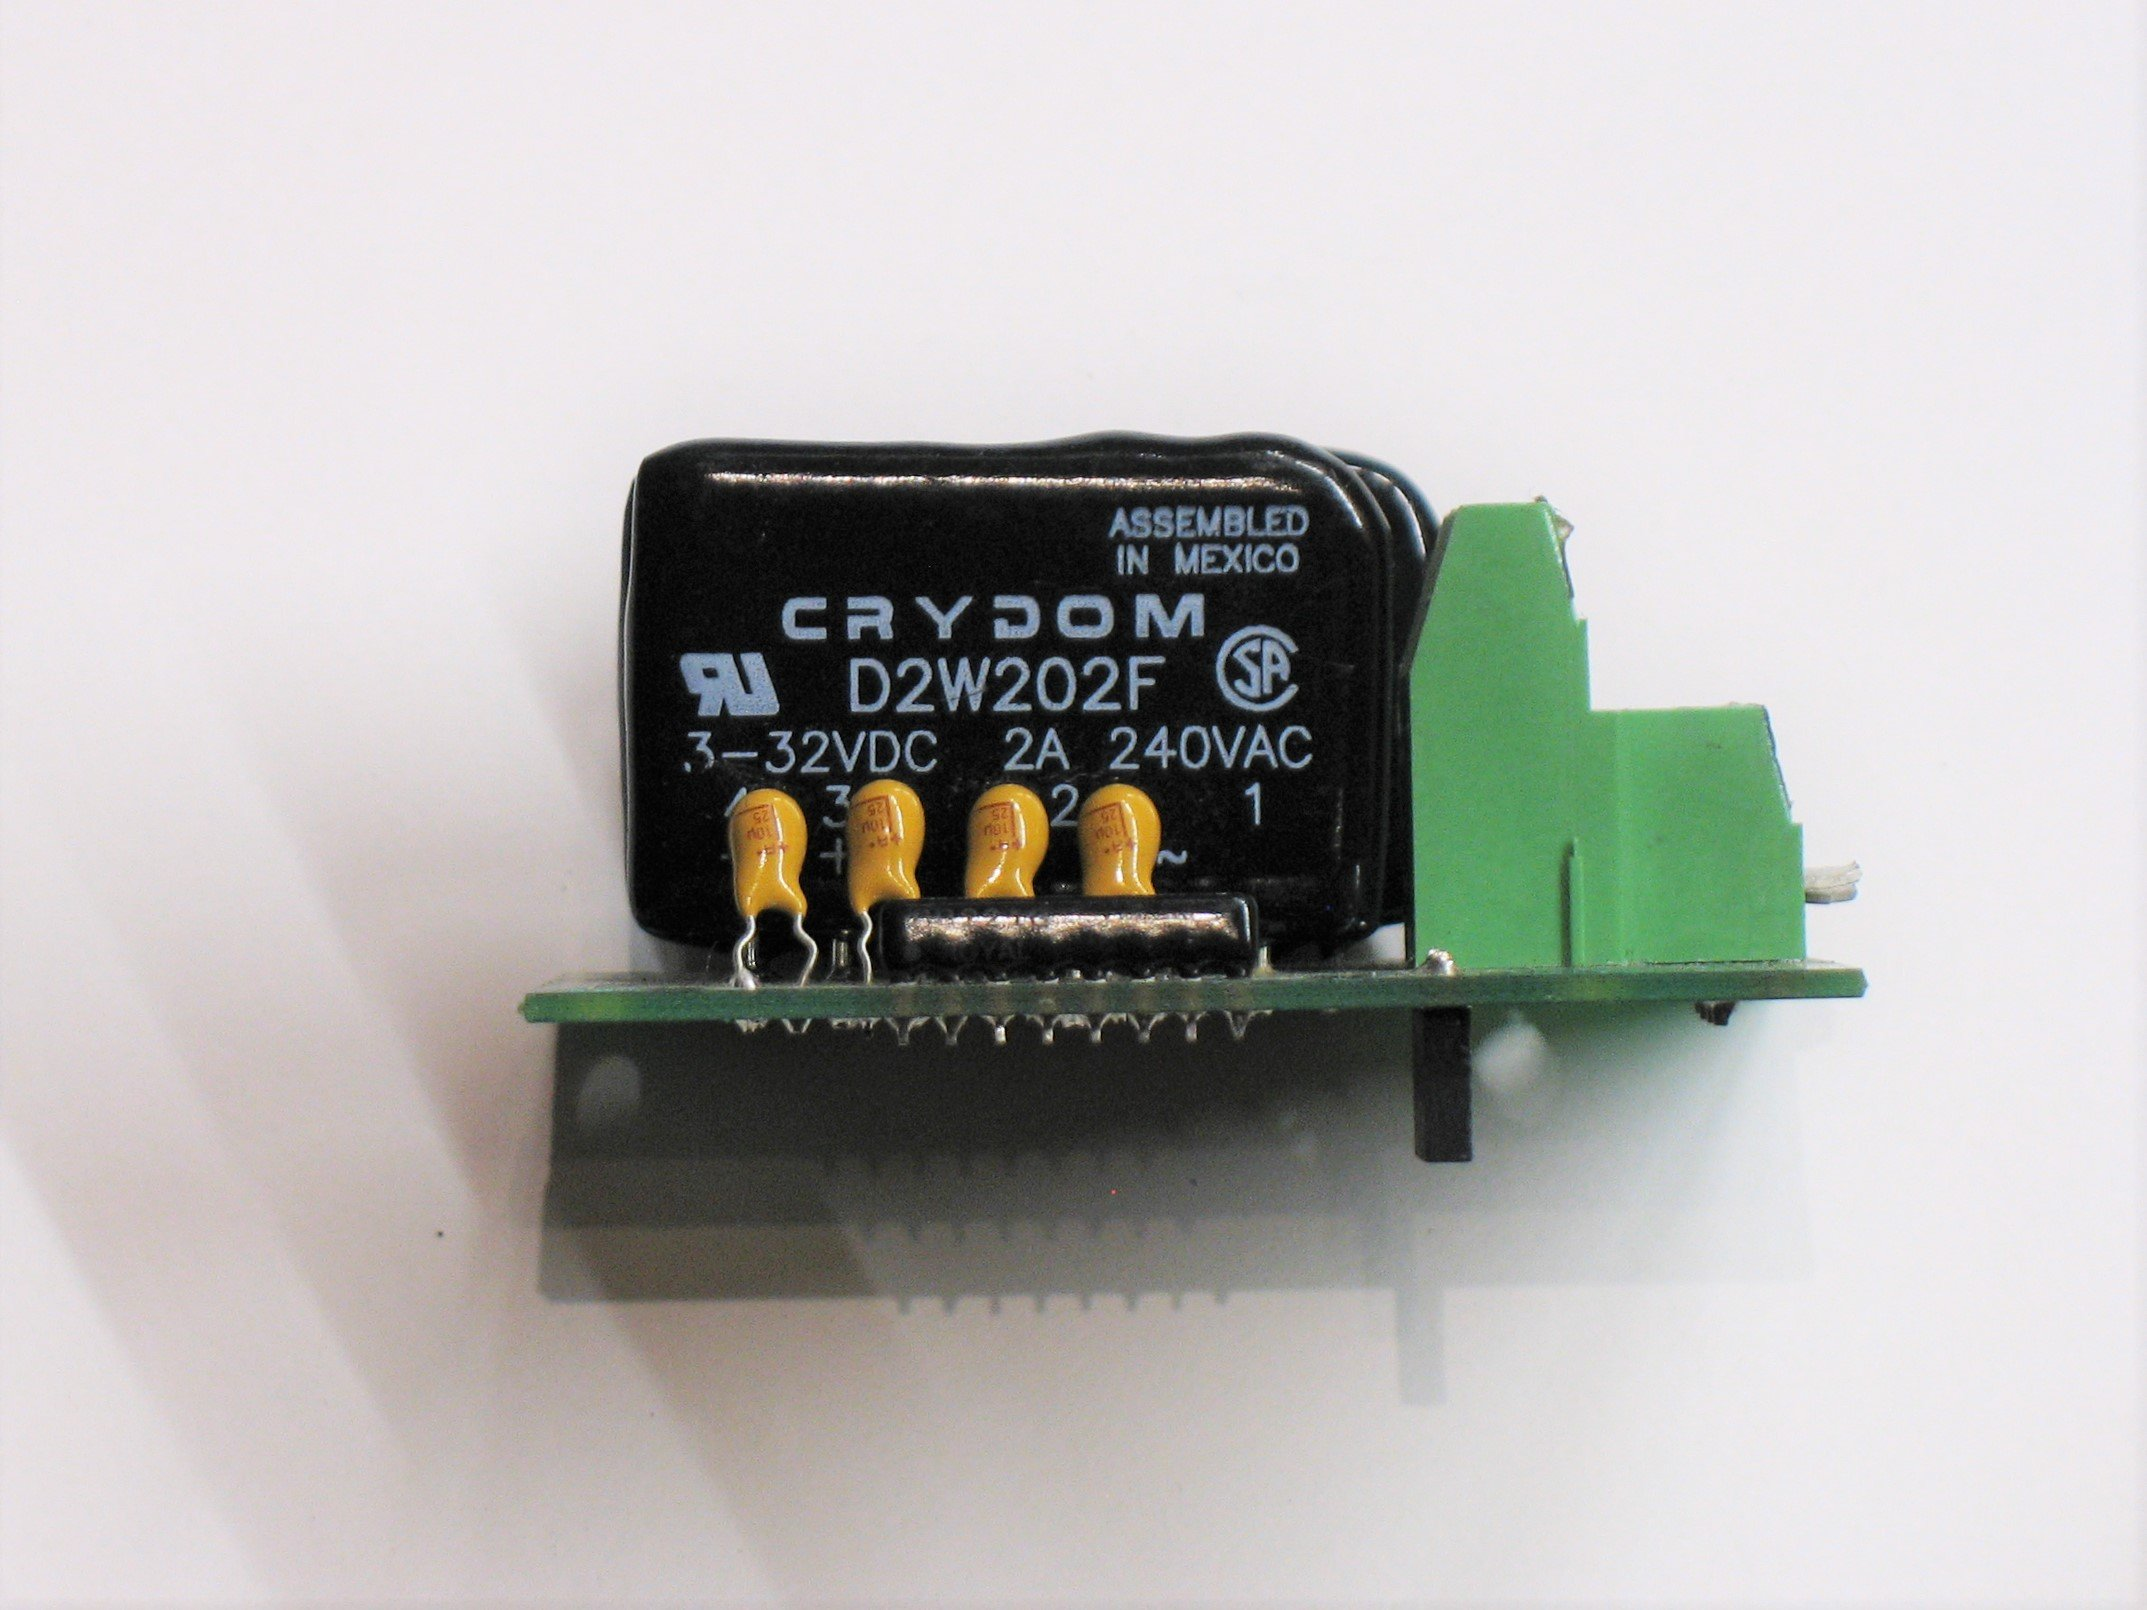 solid state relay with a single in-line package PCB mount